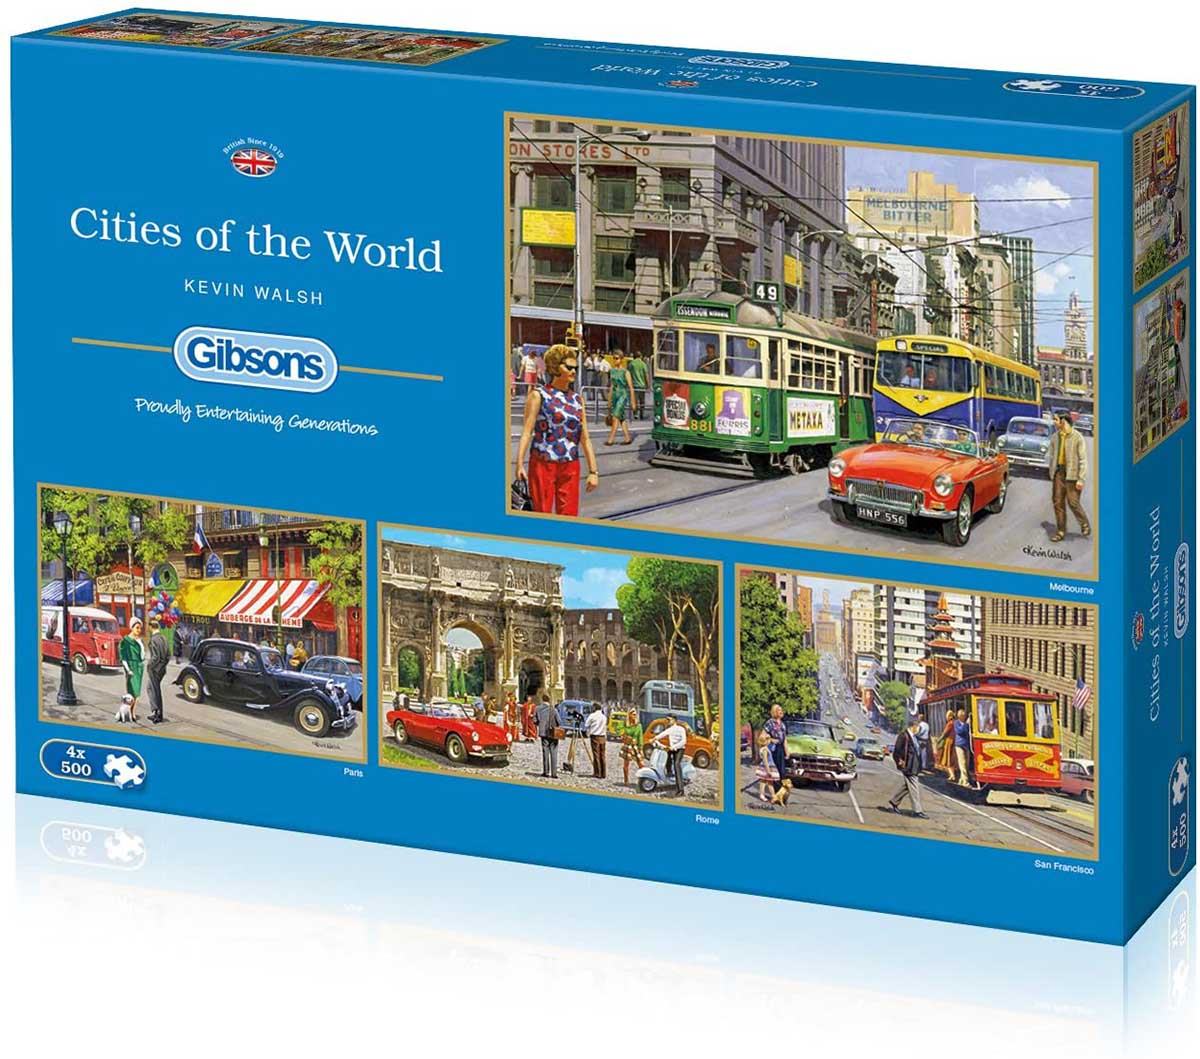 Cities of the World Travel Jigsaw Puzzle